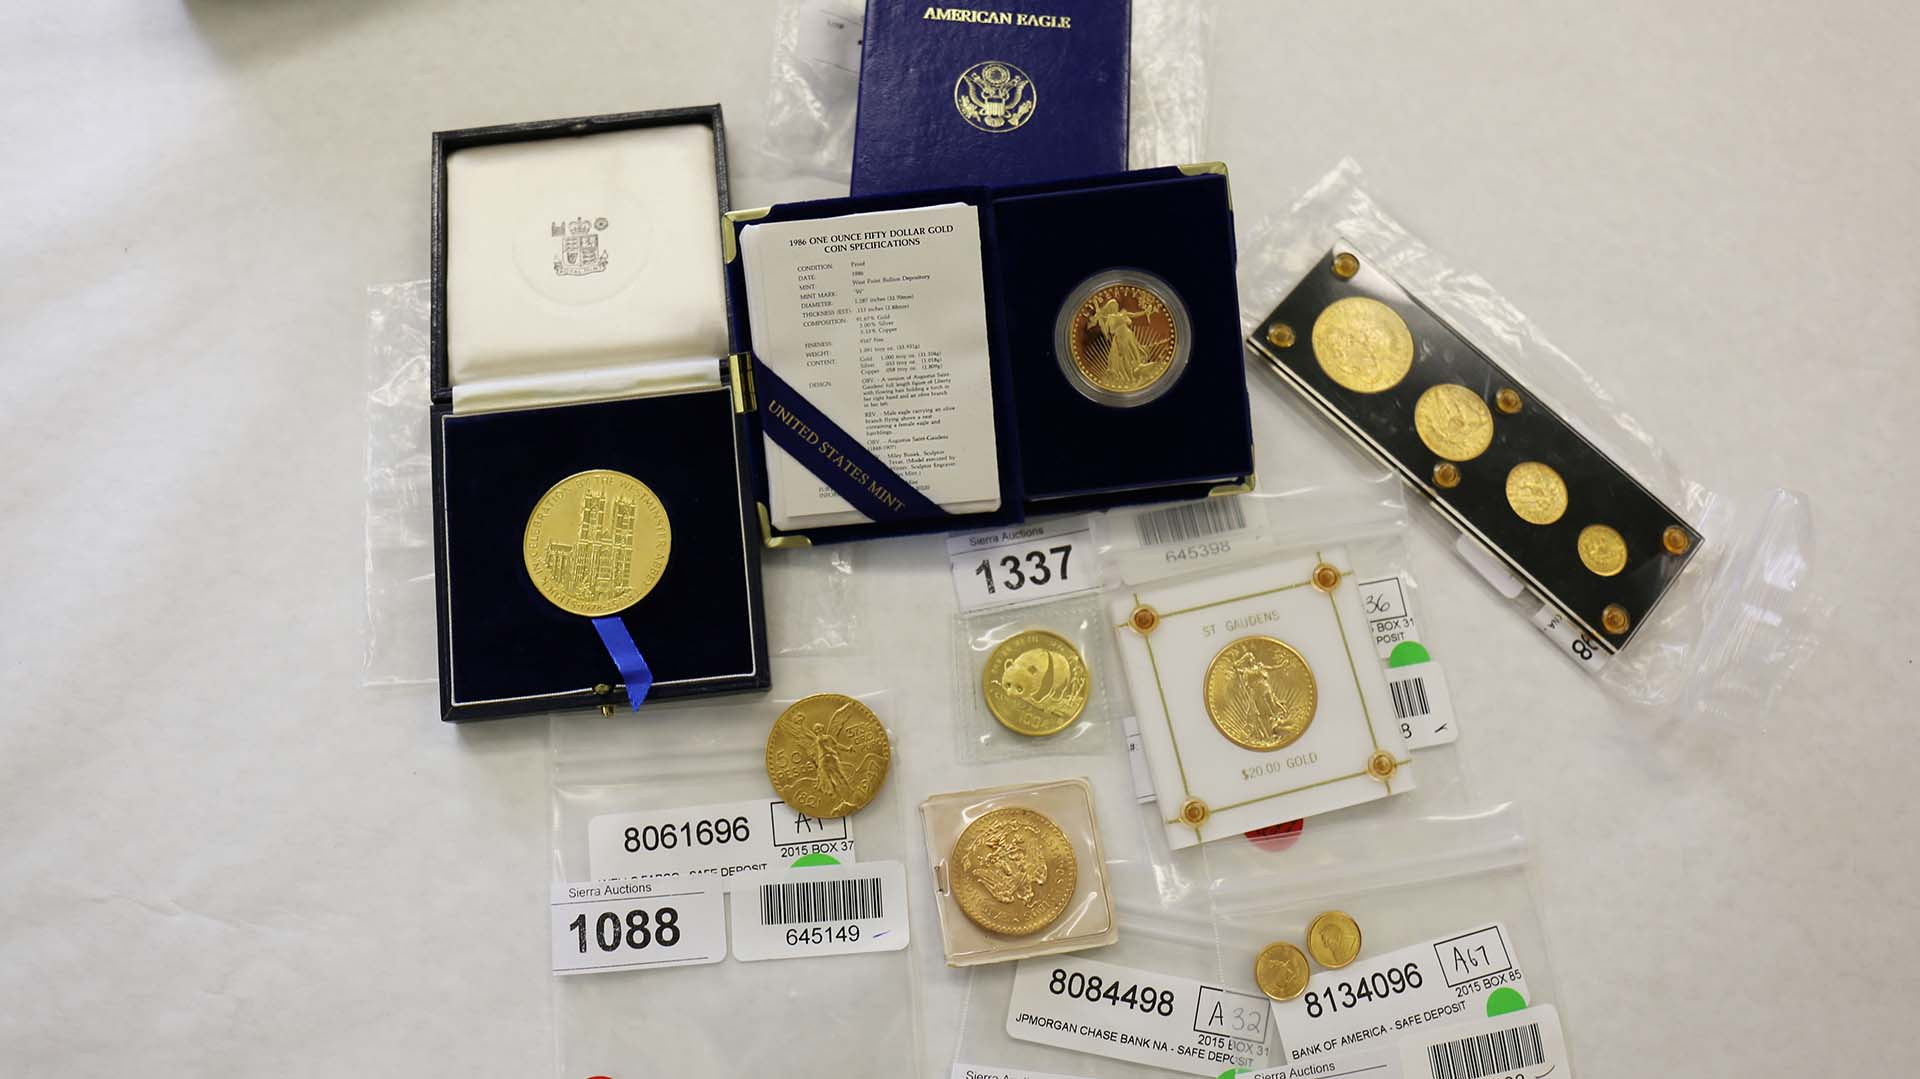 Gold coins are among the unclaimed property being auctioned off by the Arizona Department of Revenue in December 2018